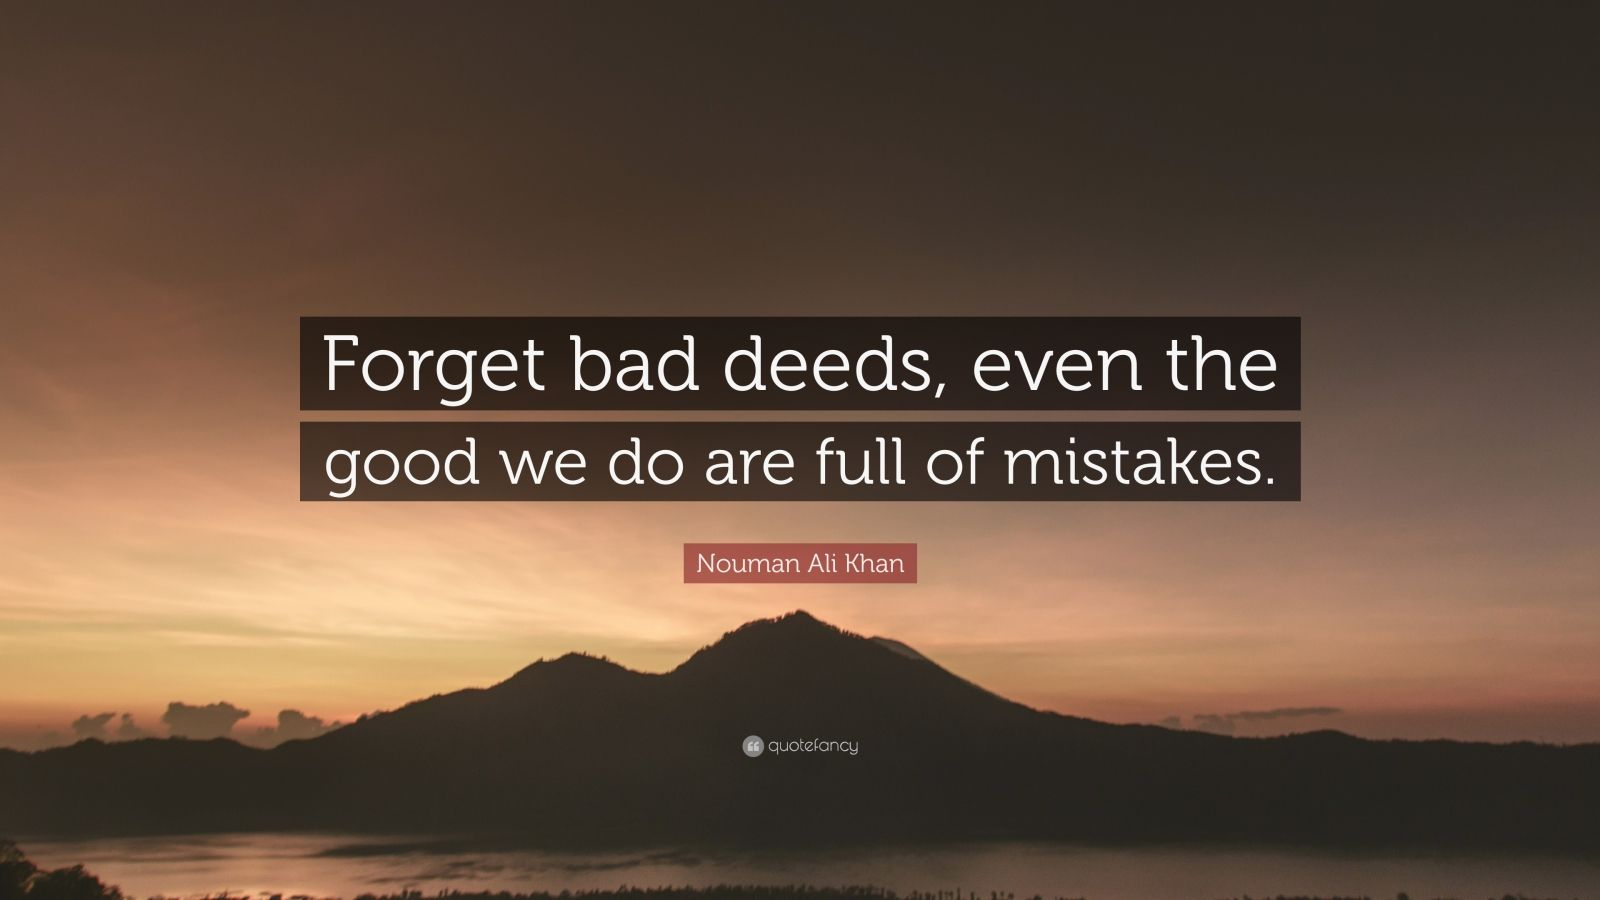 """Nouman Ali Khan Quote: """"Forget bad deeds, even the good we do are full of mistakes."""""""